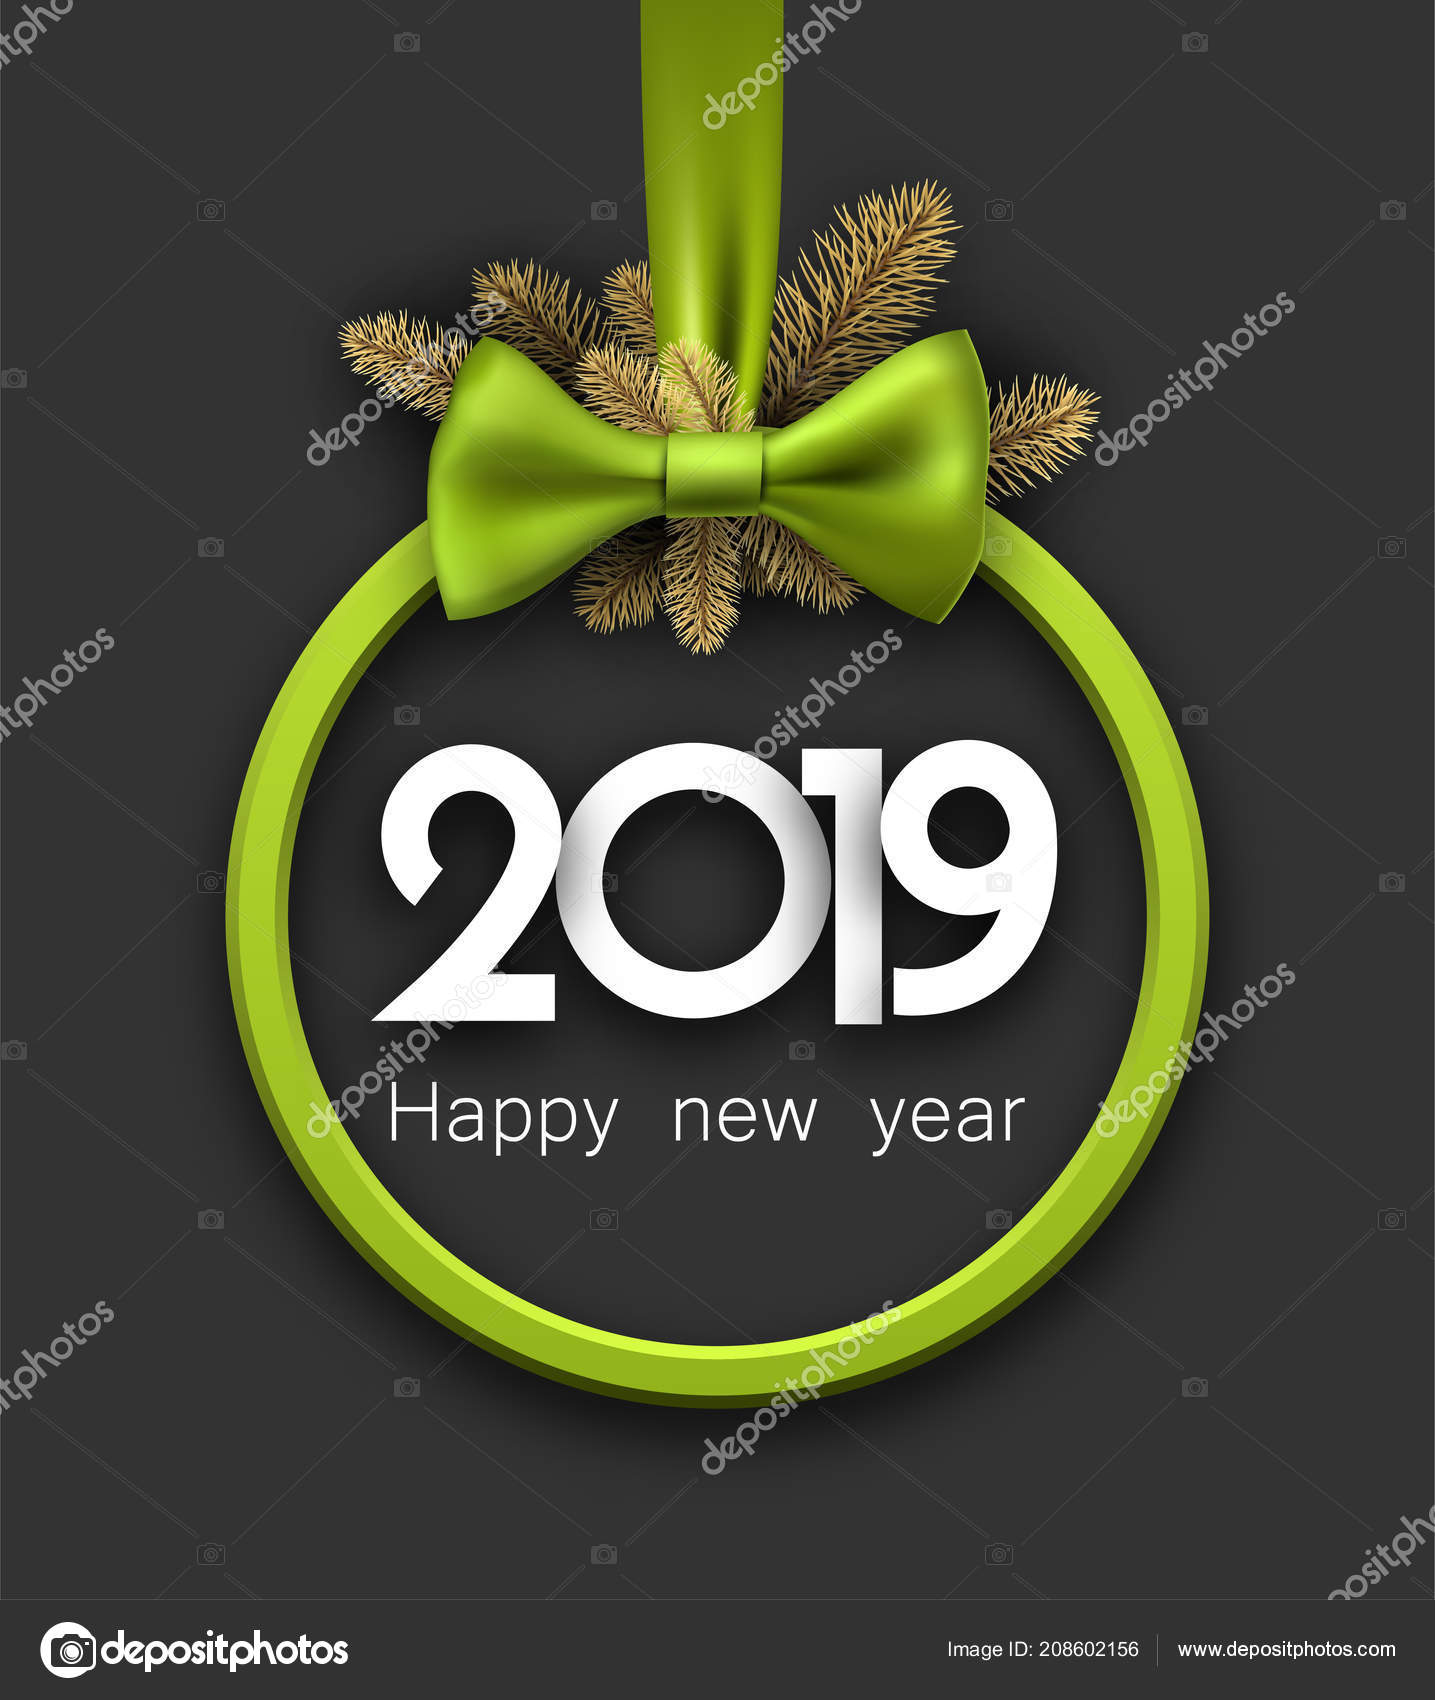 grey 2019 happy new year background green frame fir branches stock vector